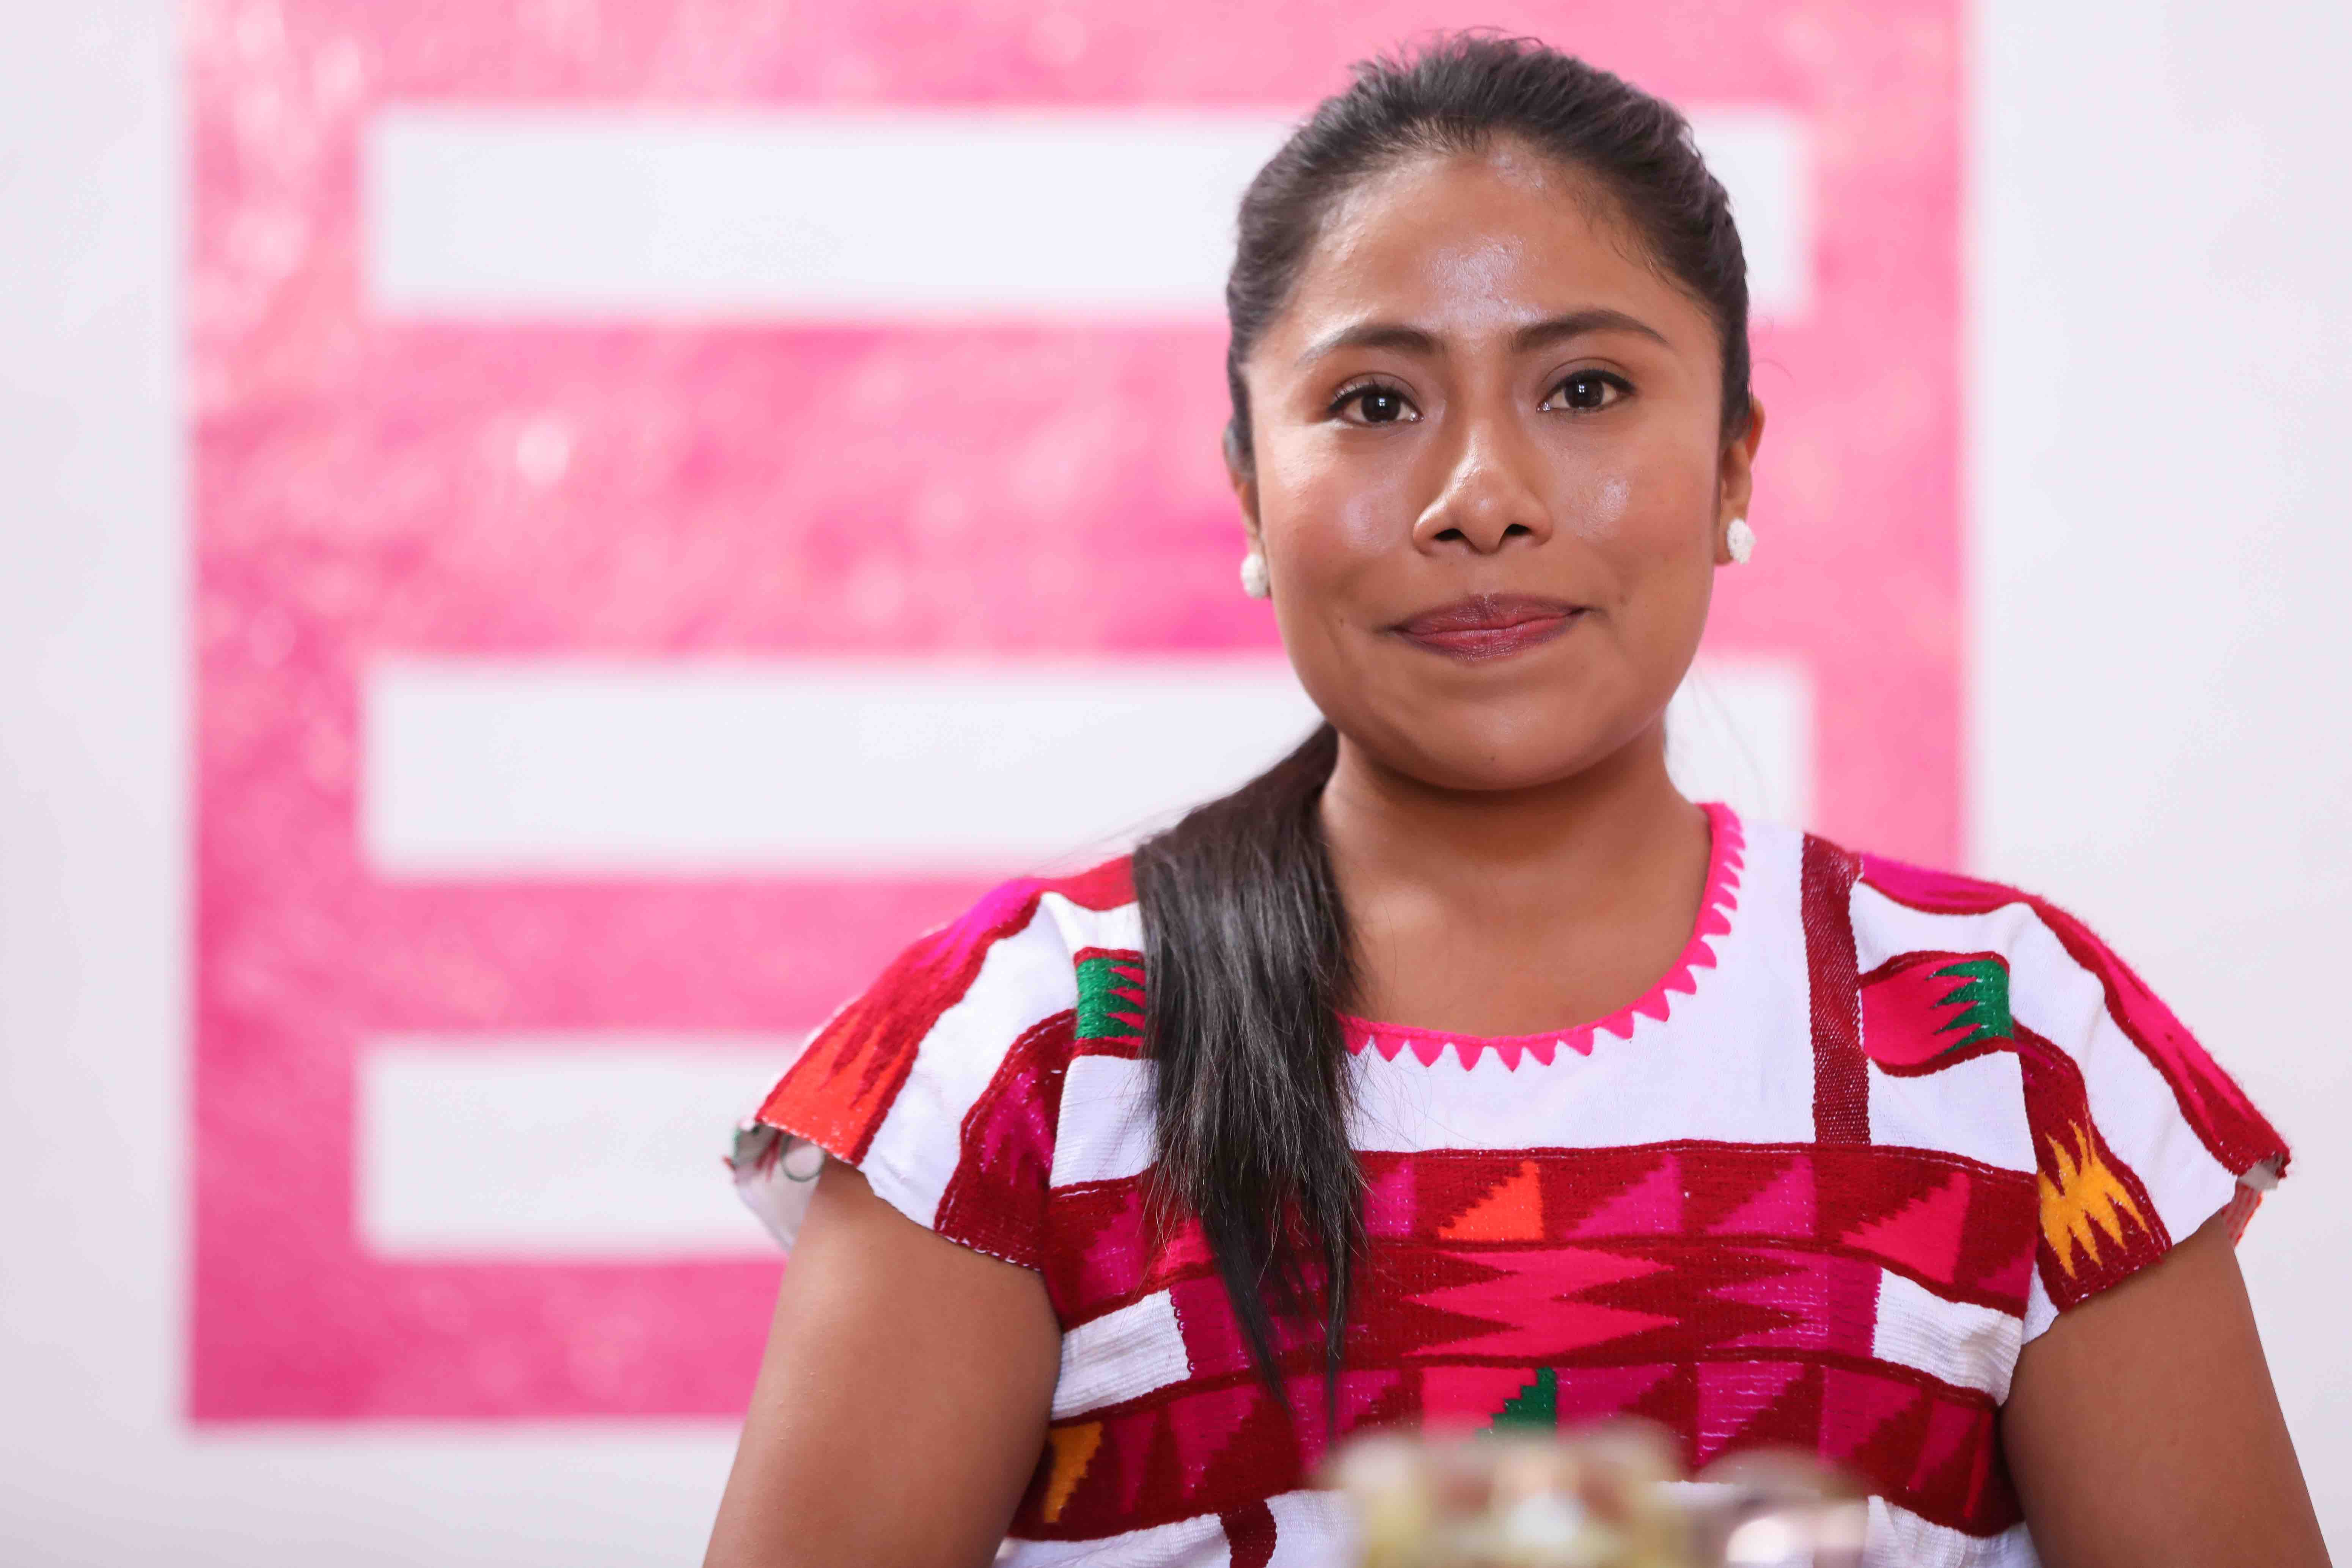 'Roma's Yalitza Aparicio Details How She's Been Working to Fight Racism in Mexico in New Op-Ed